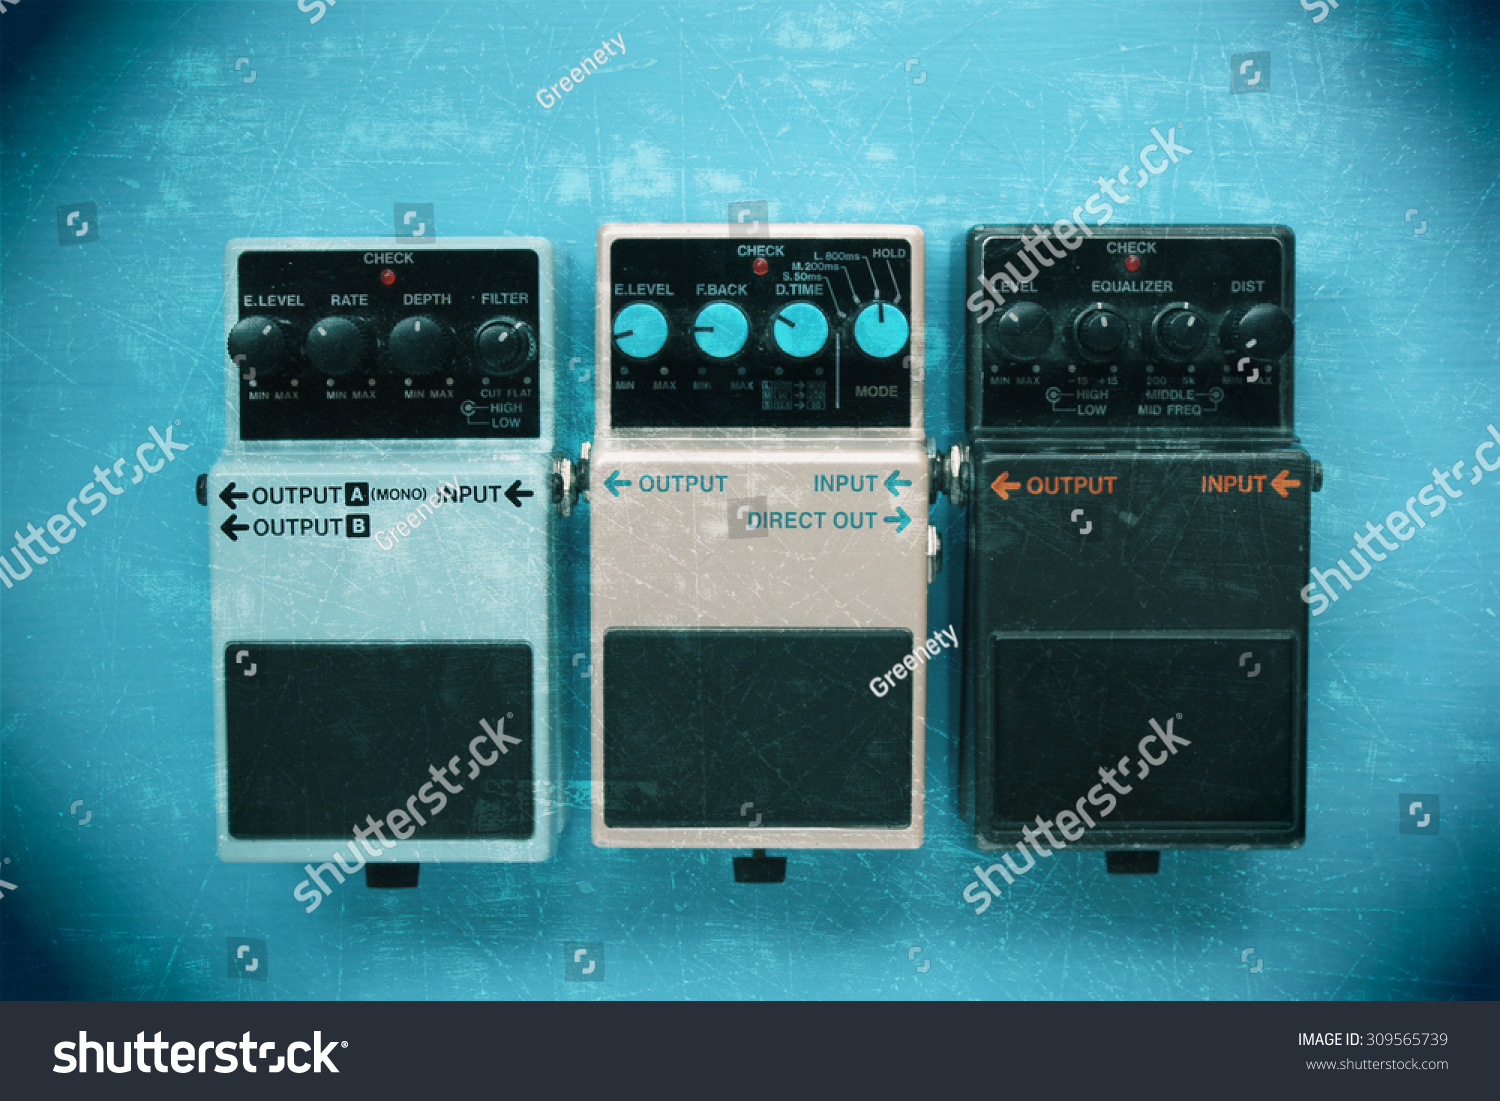 guitar pedals grunge effect stock photo 309565739 shutterstock. Black Bedroom Furniture Sets. Home Design Ideas